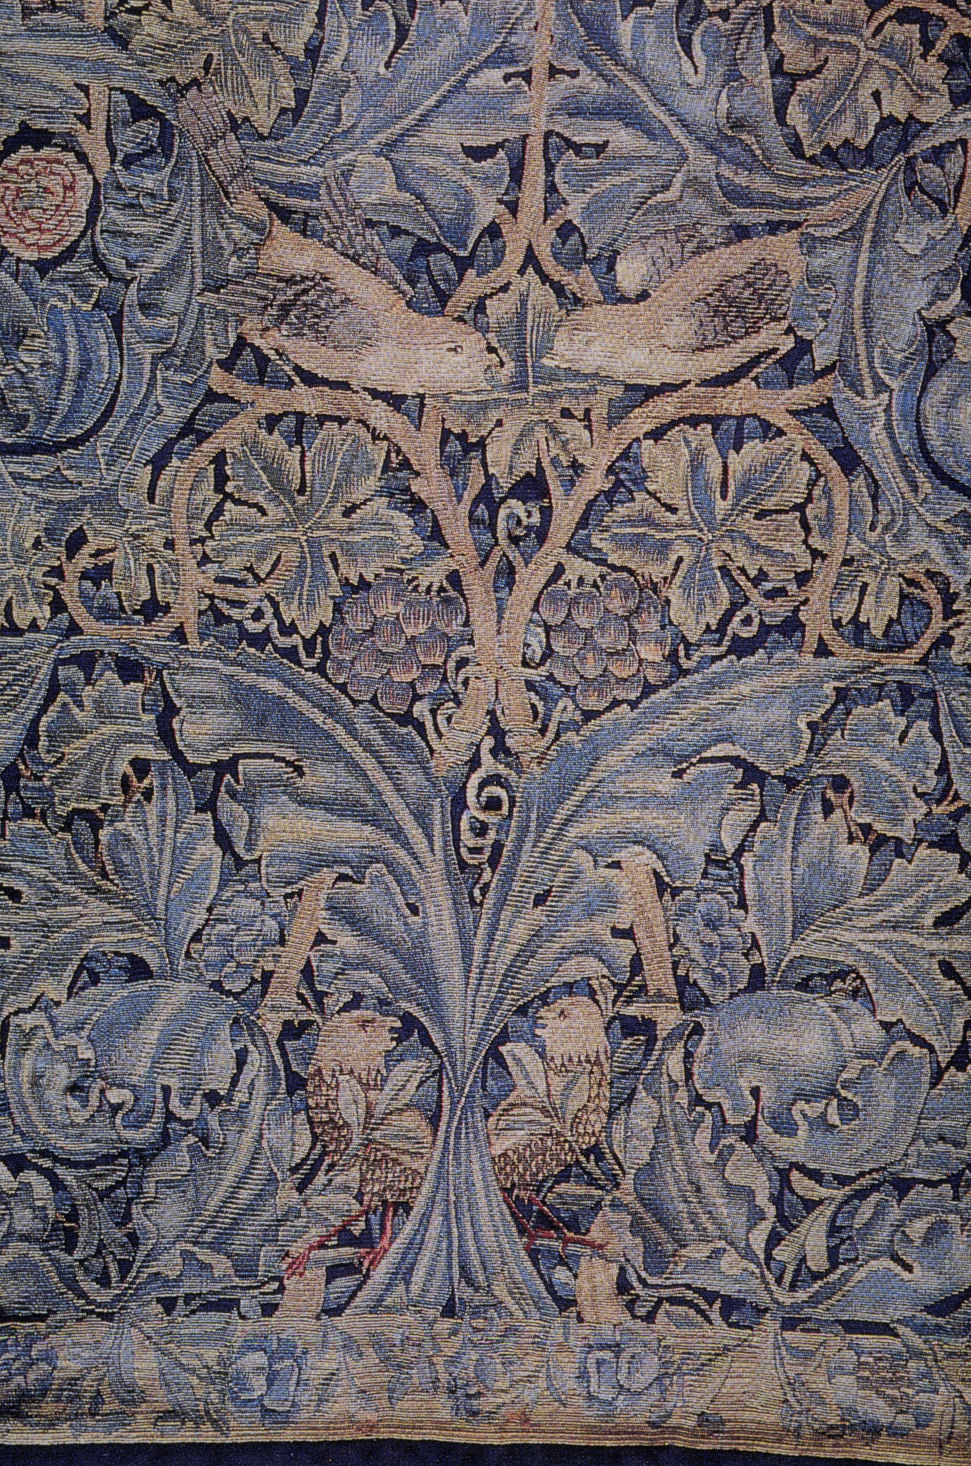 a short biography of william morris a british textile designer William morris (24 march 1834 – 3 october 1896) was an english textile designer, artist, writer, and socialist associated with the pre-raphaelite brotherhood and the english arts and crafts.